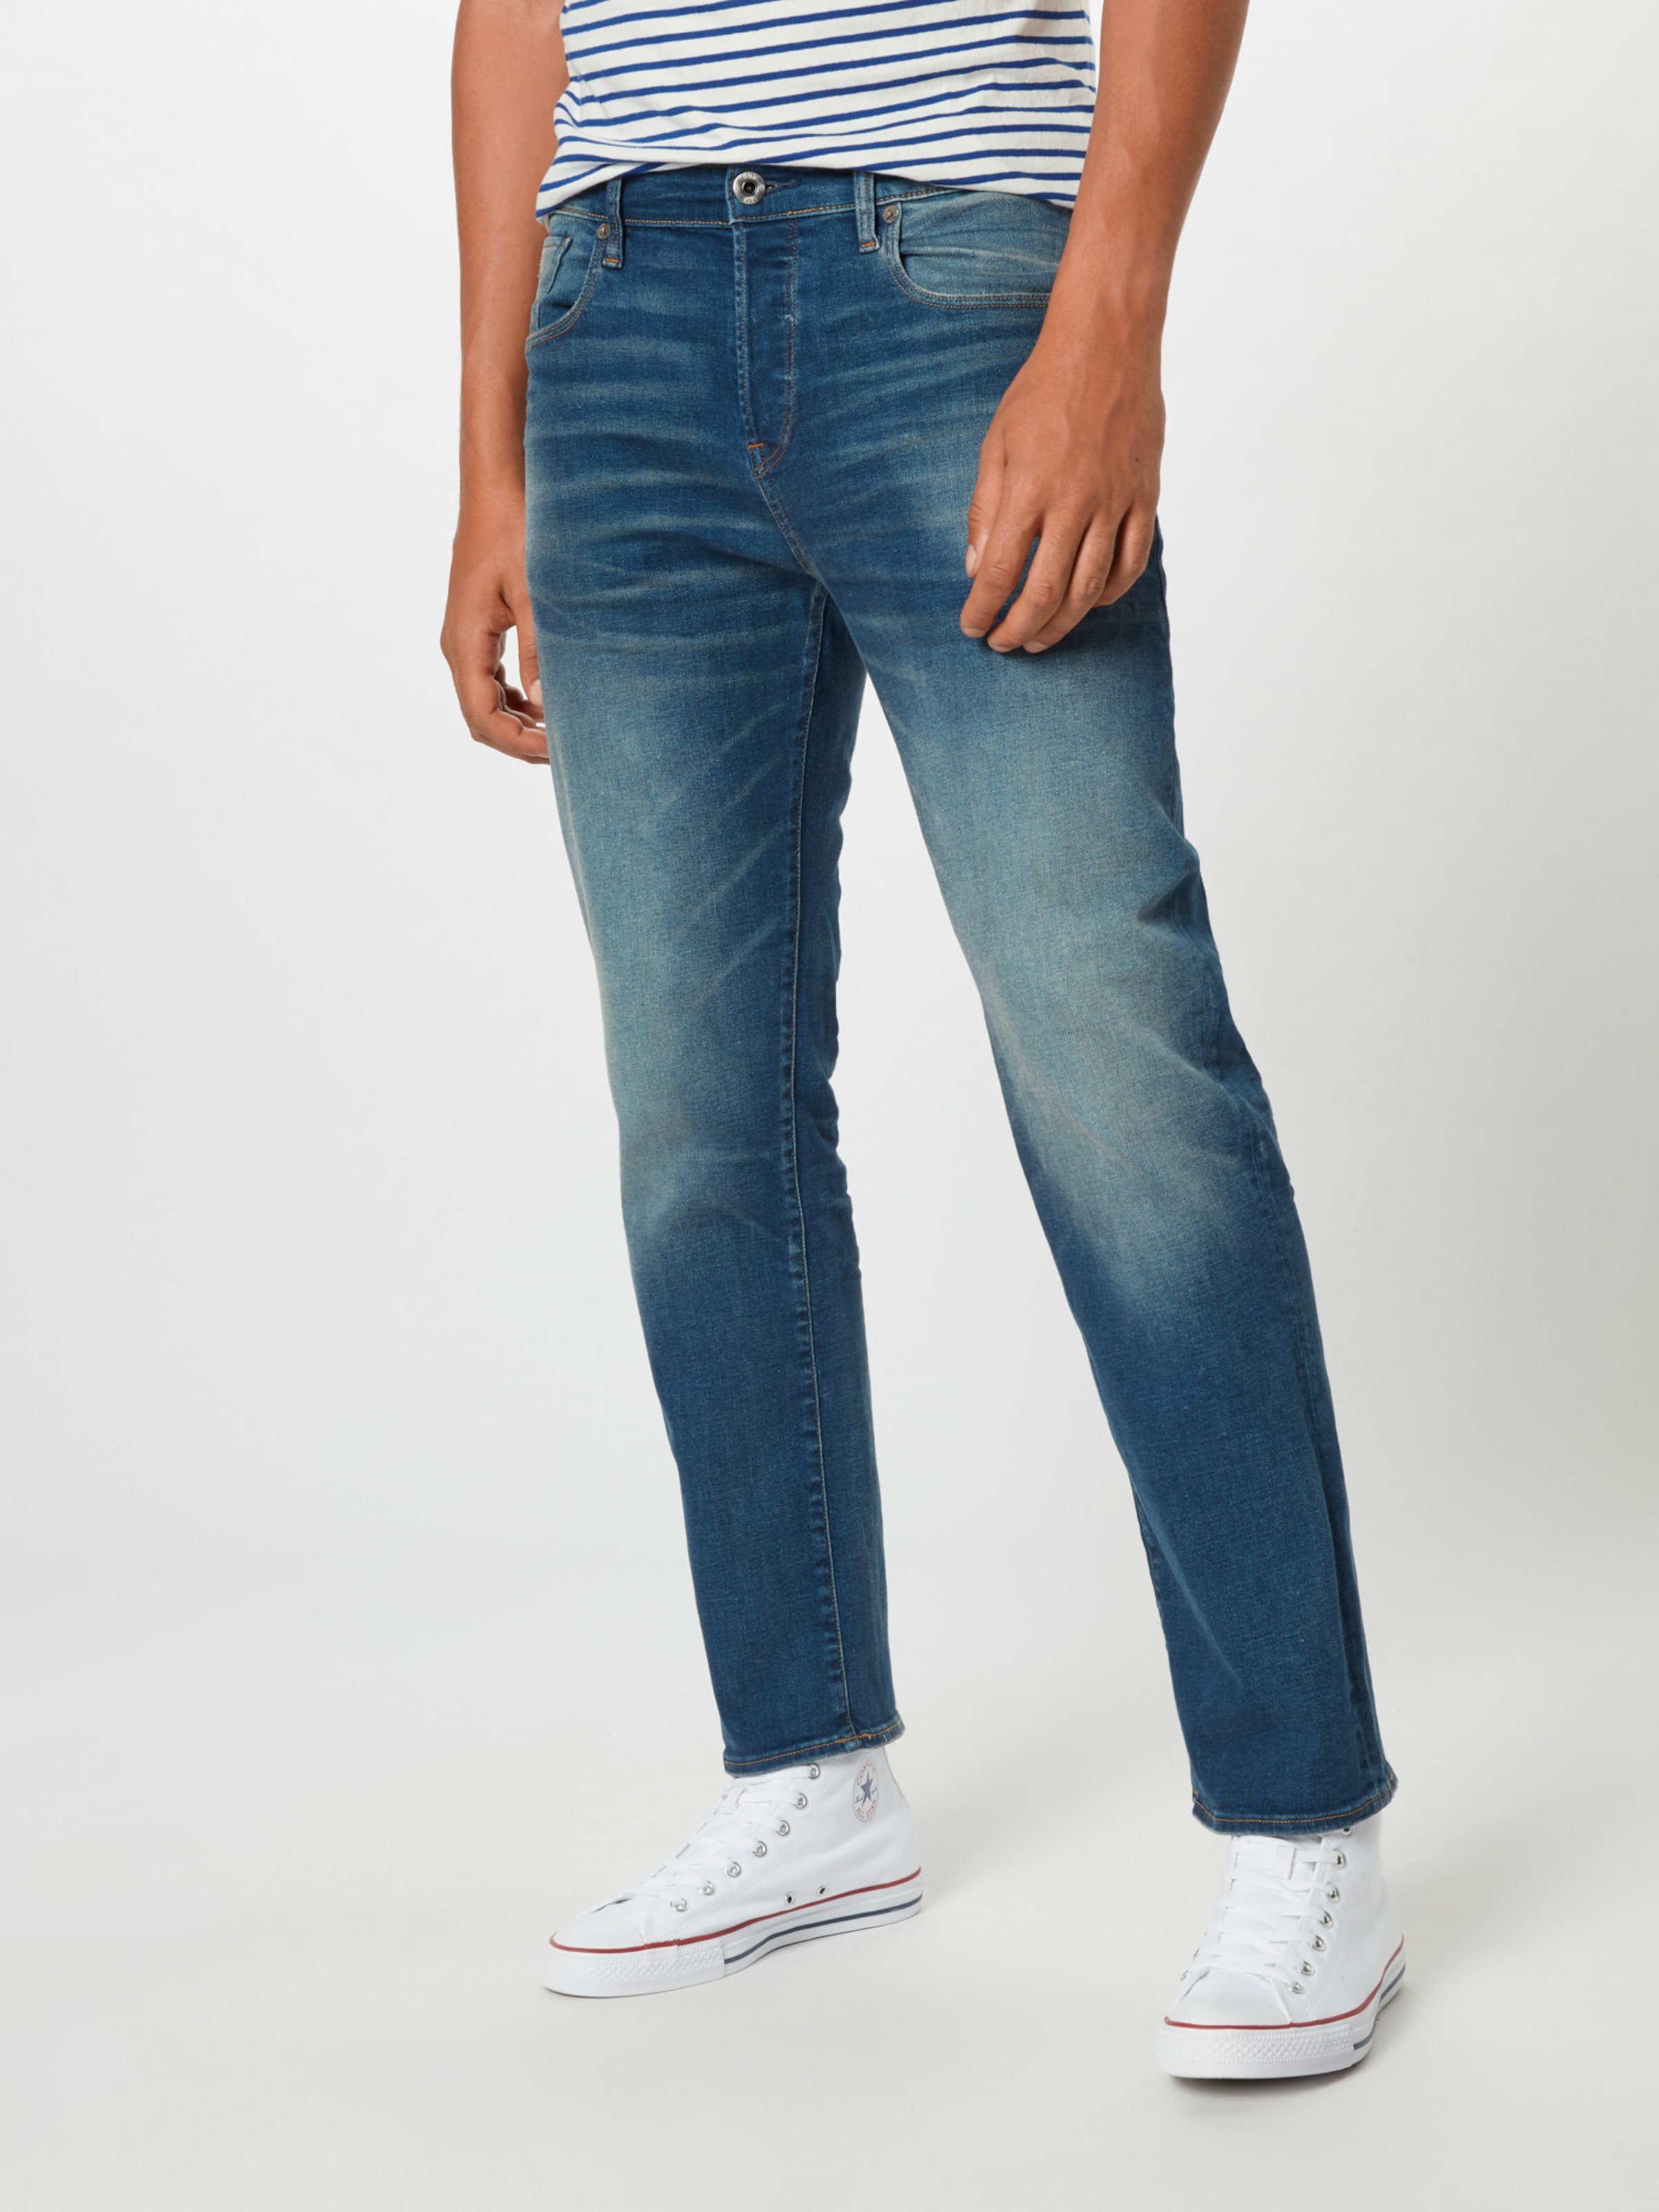 Jeans G Blue Denim '3301 Loose' star Raw In kwOn0P